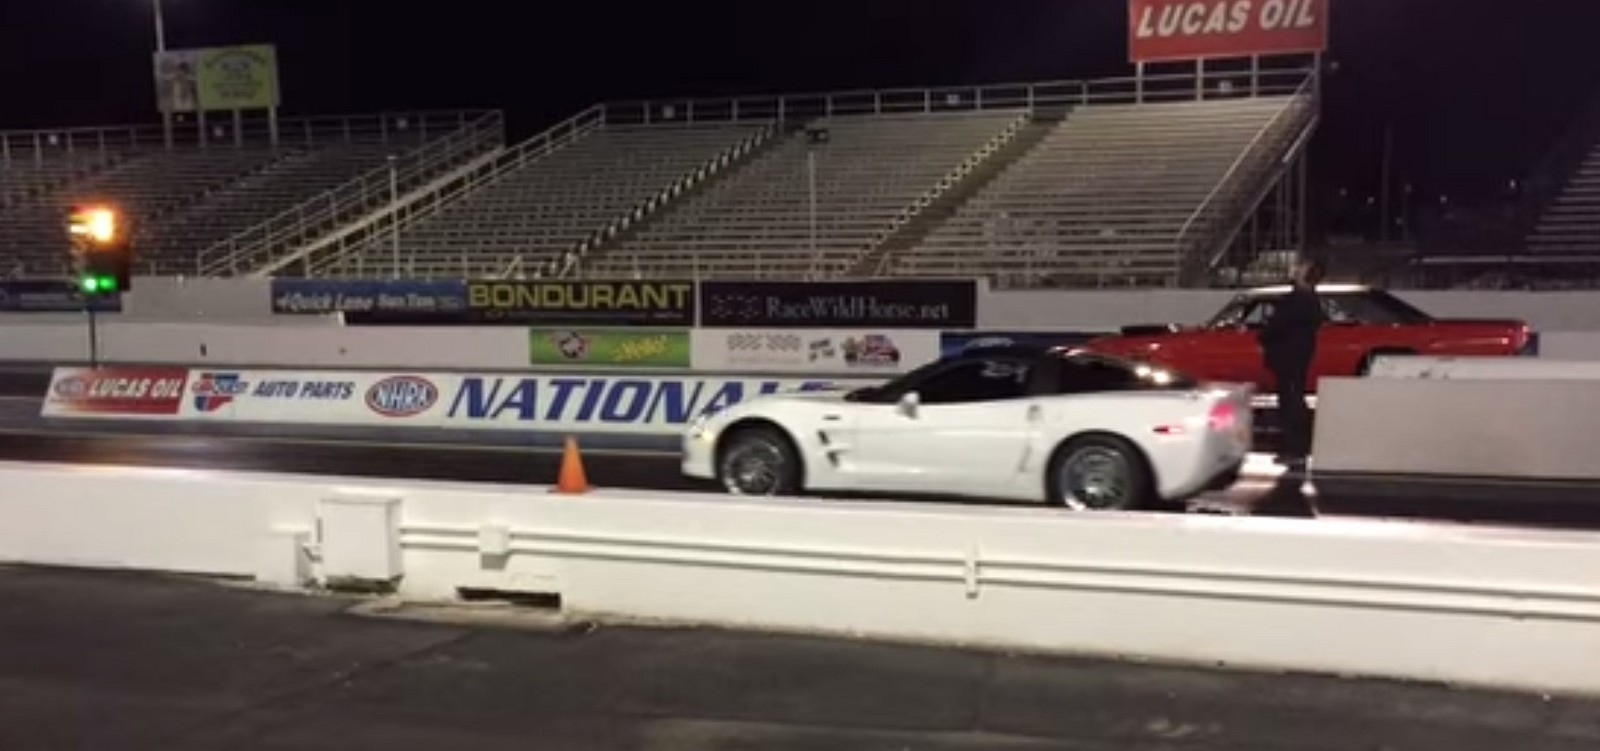 Chevrolet Corvette ZR1 3ZR runs 10.217 @ 143.690 MPH in the 1/4 mile